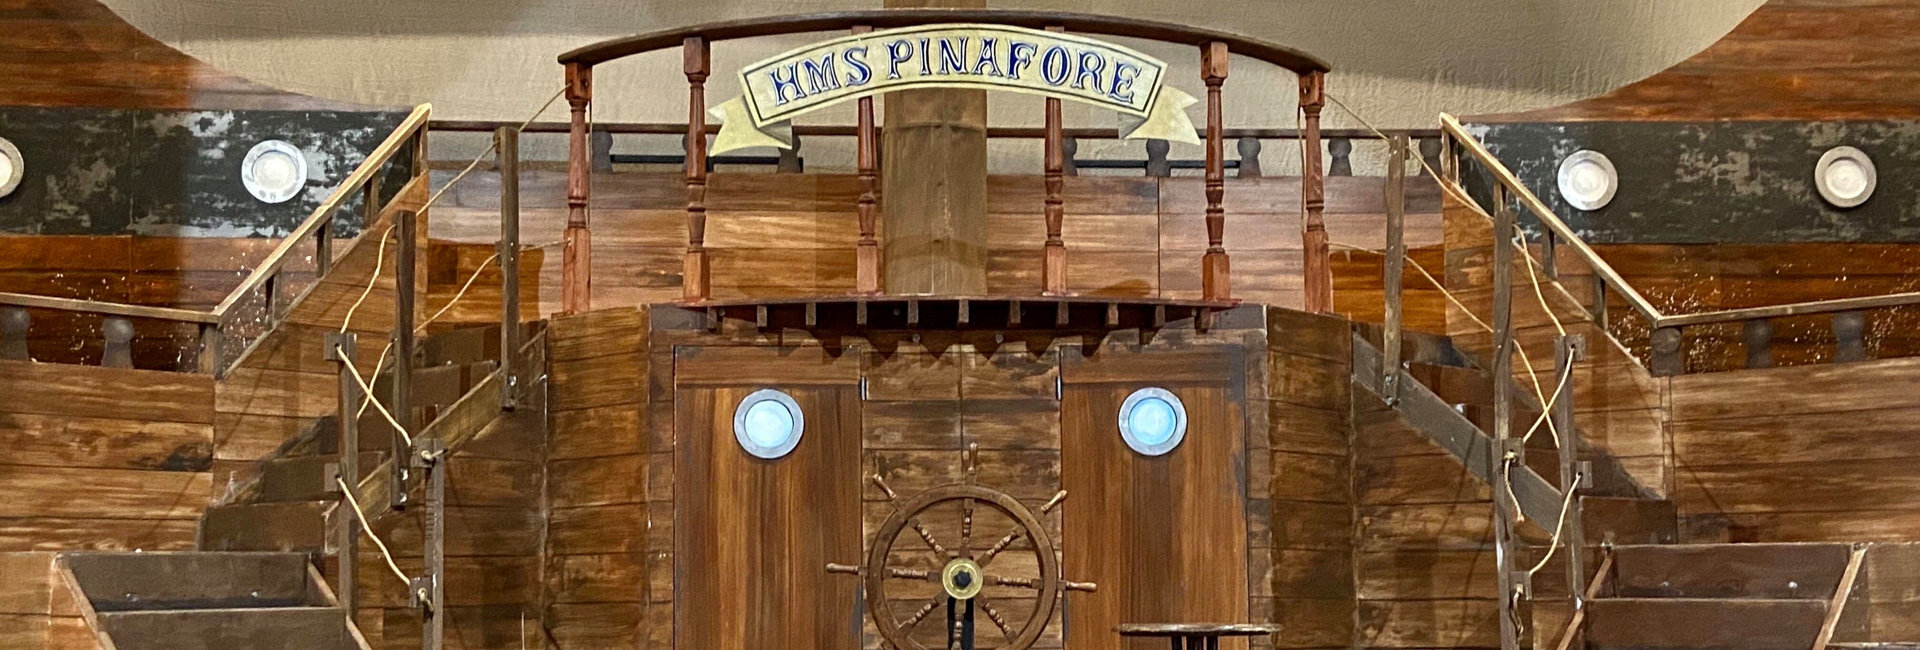 HMS Pinafore Set